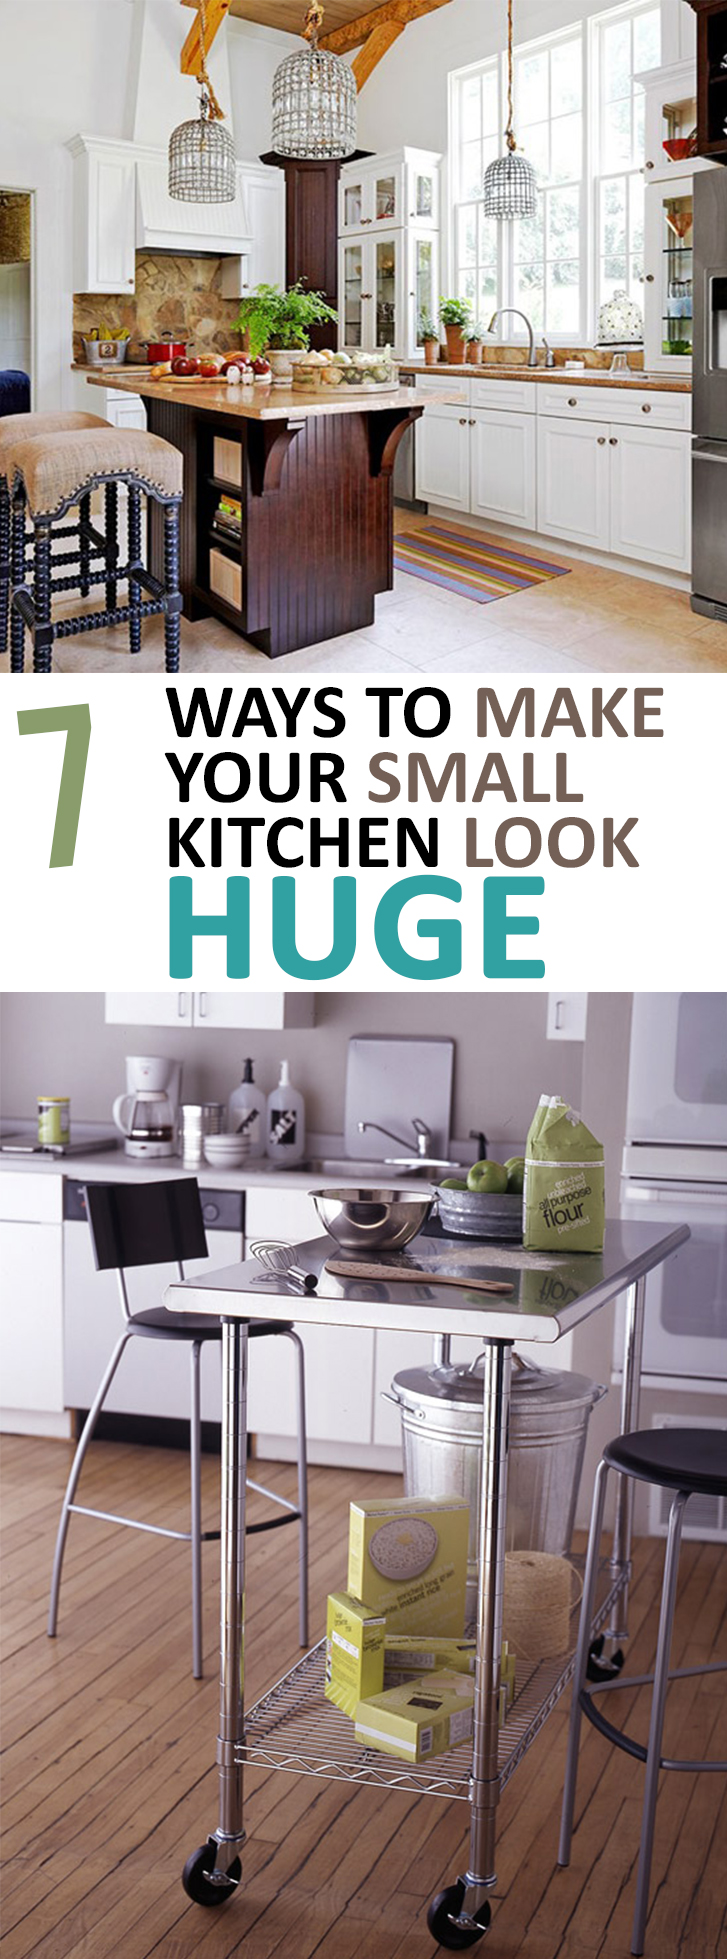 7-ways-to-make-your-small-kitchen-look-huge